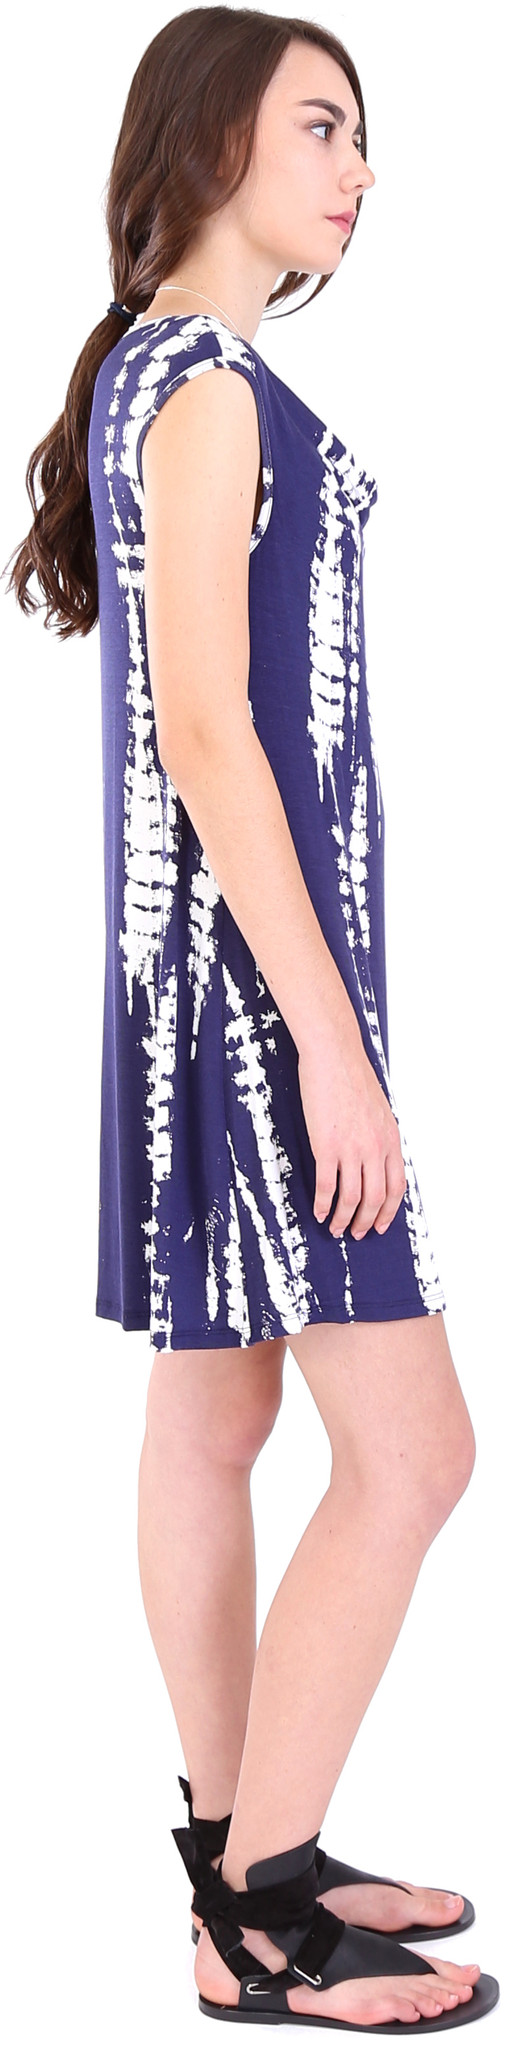 Michael Farrell Tie Dye Dress